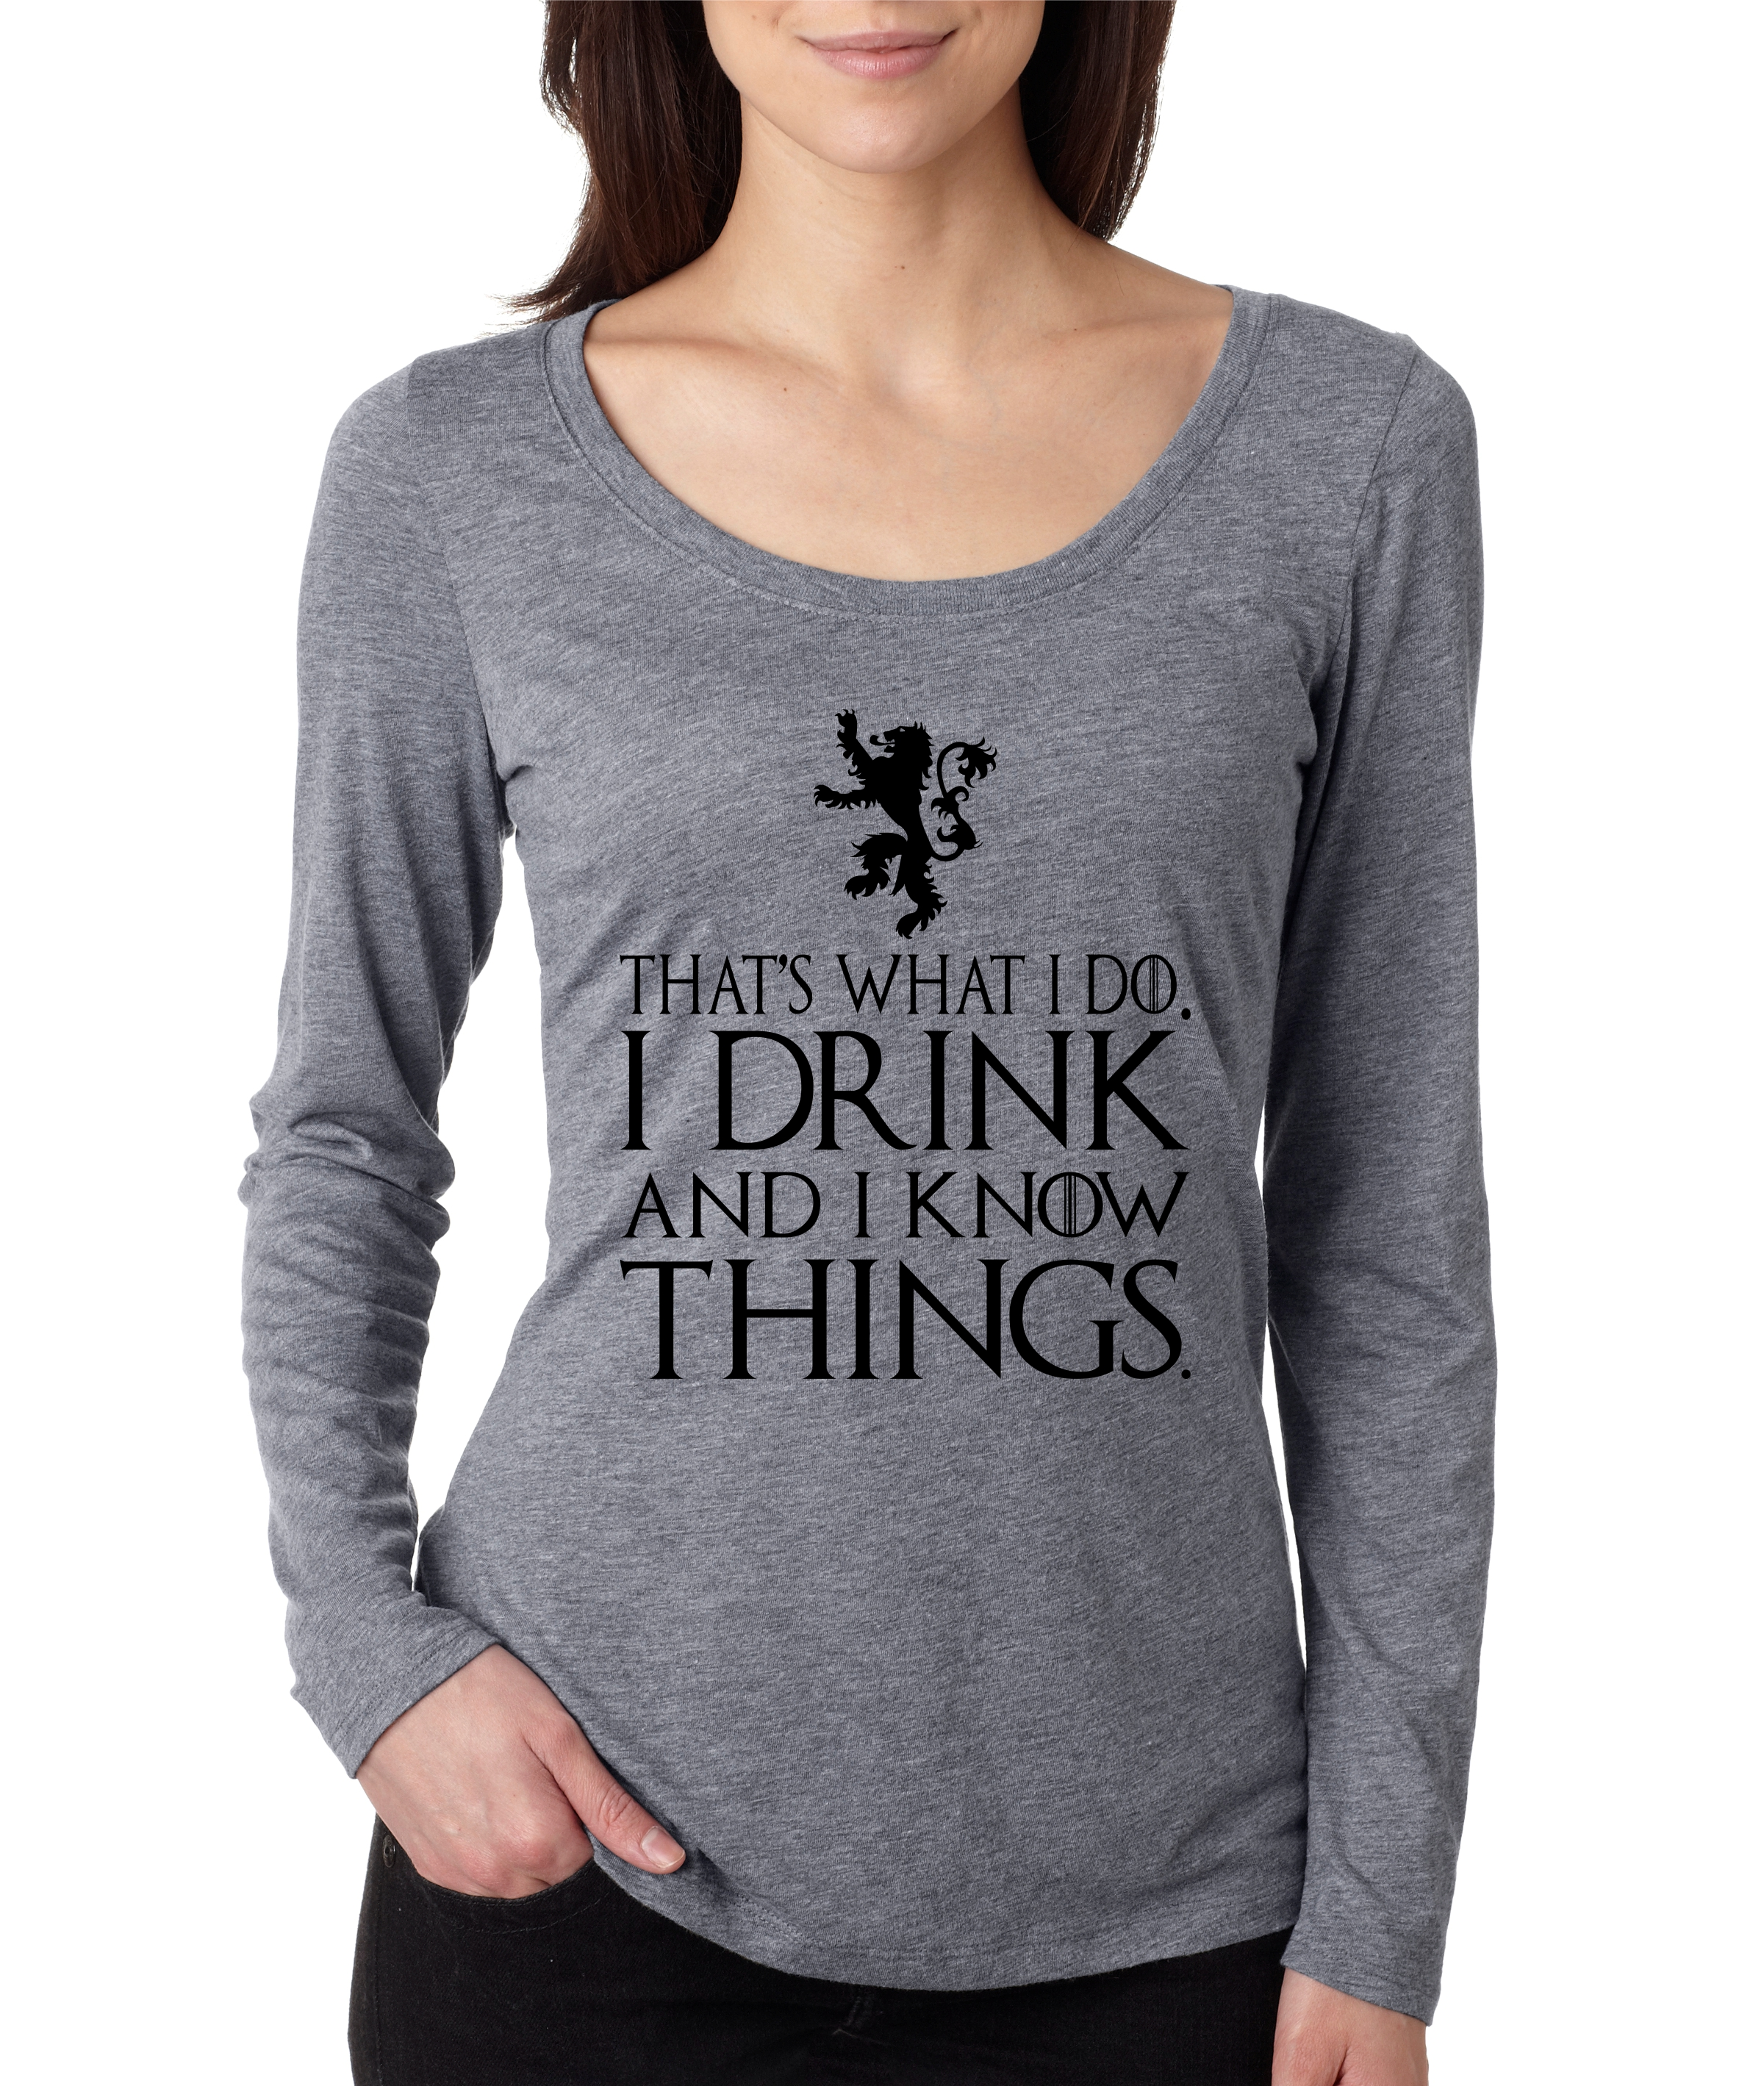 Women's Shirt That What I Do I Drink And I Know Things Tyrion